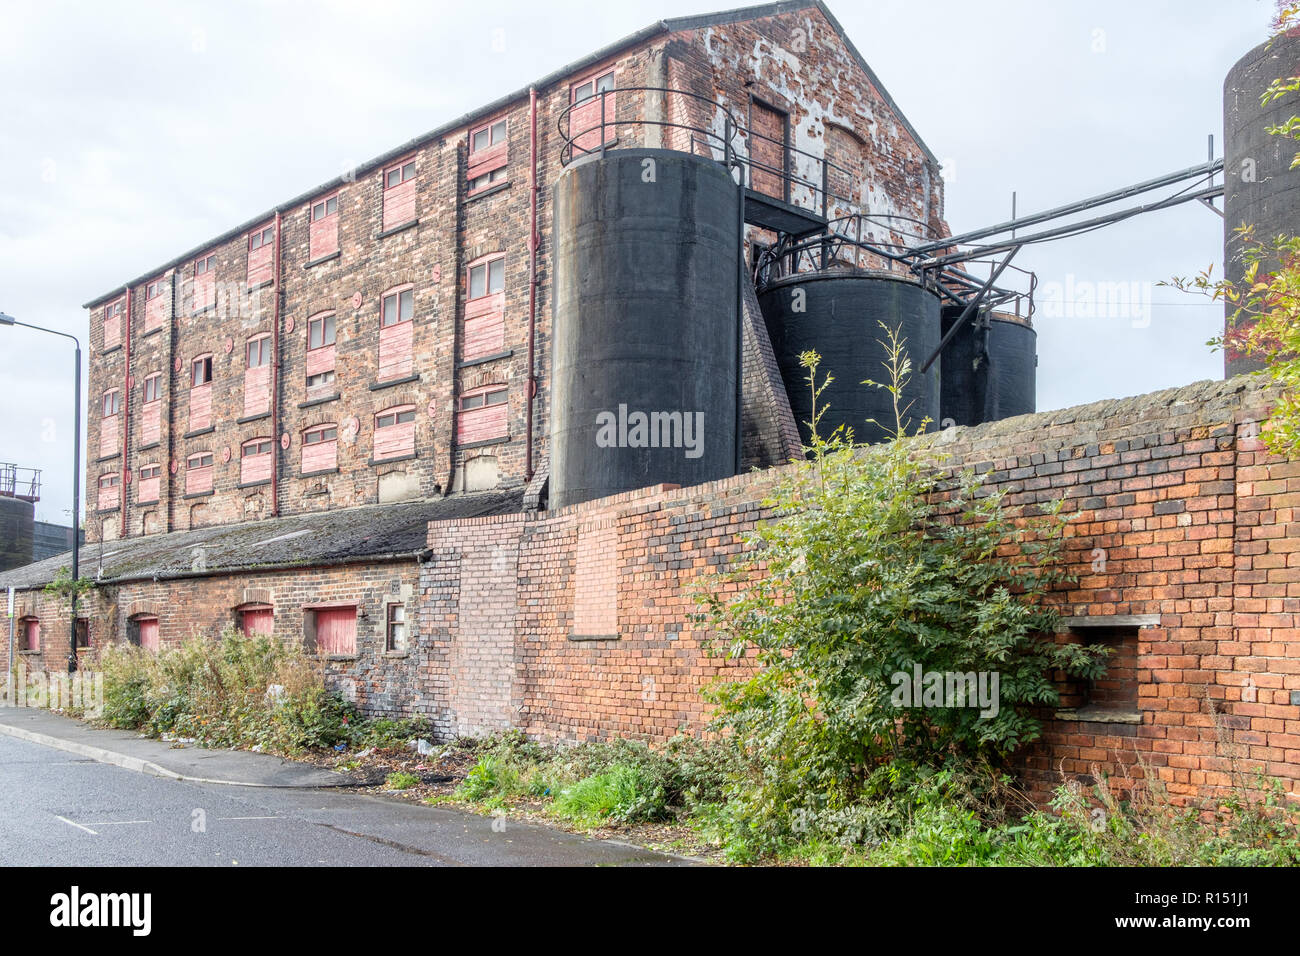 Old factory buildings in the vicinity of Granary Wharf in the city centre of Leeds, which is the largest town in West Yorkshire. Stock Photo